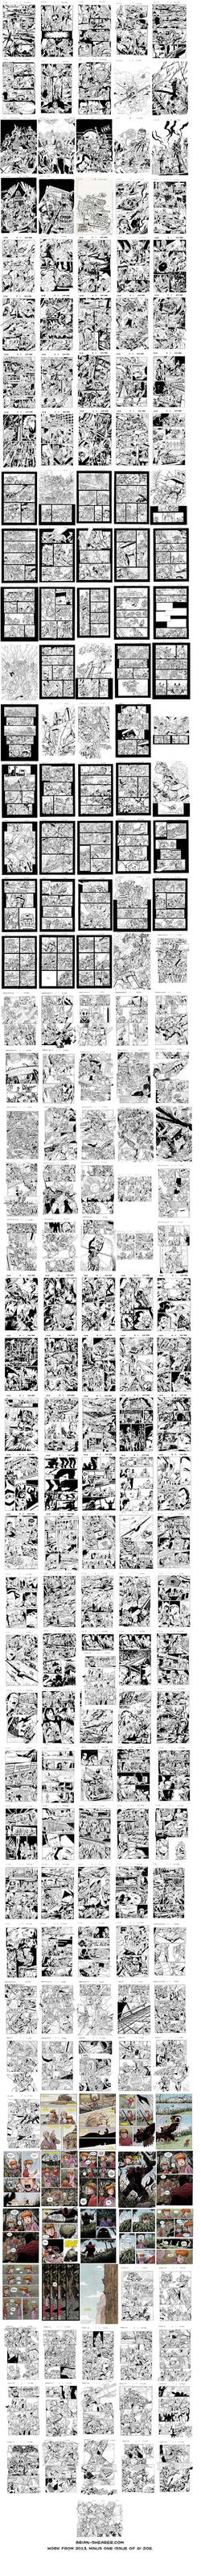 Most of the Work I did in 2013 - in one image